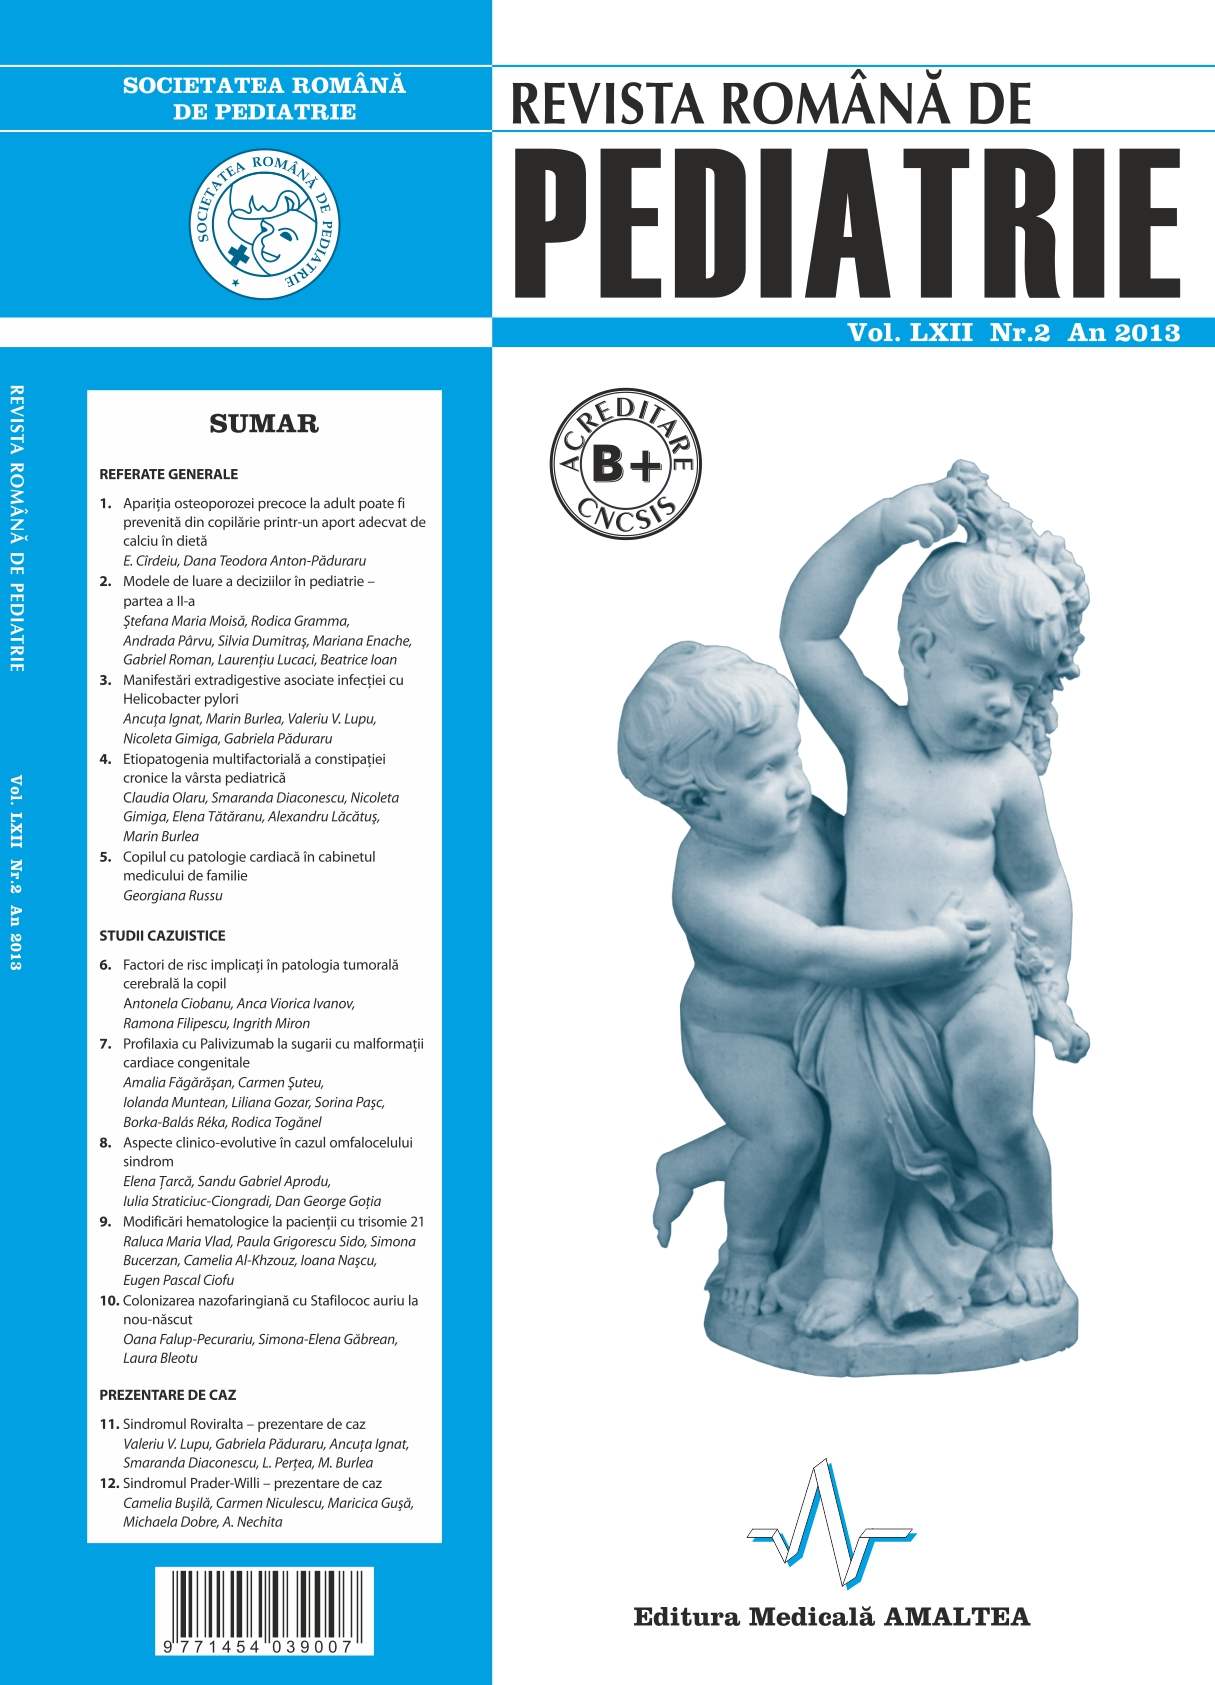 Revista Romana de PEDIATRIE | Volumul LXII, No. 2, Year 2013